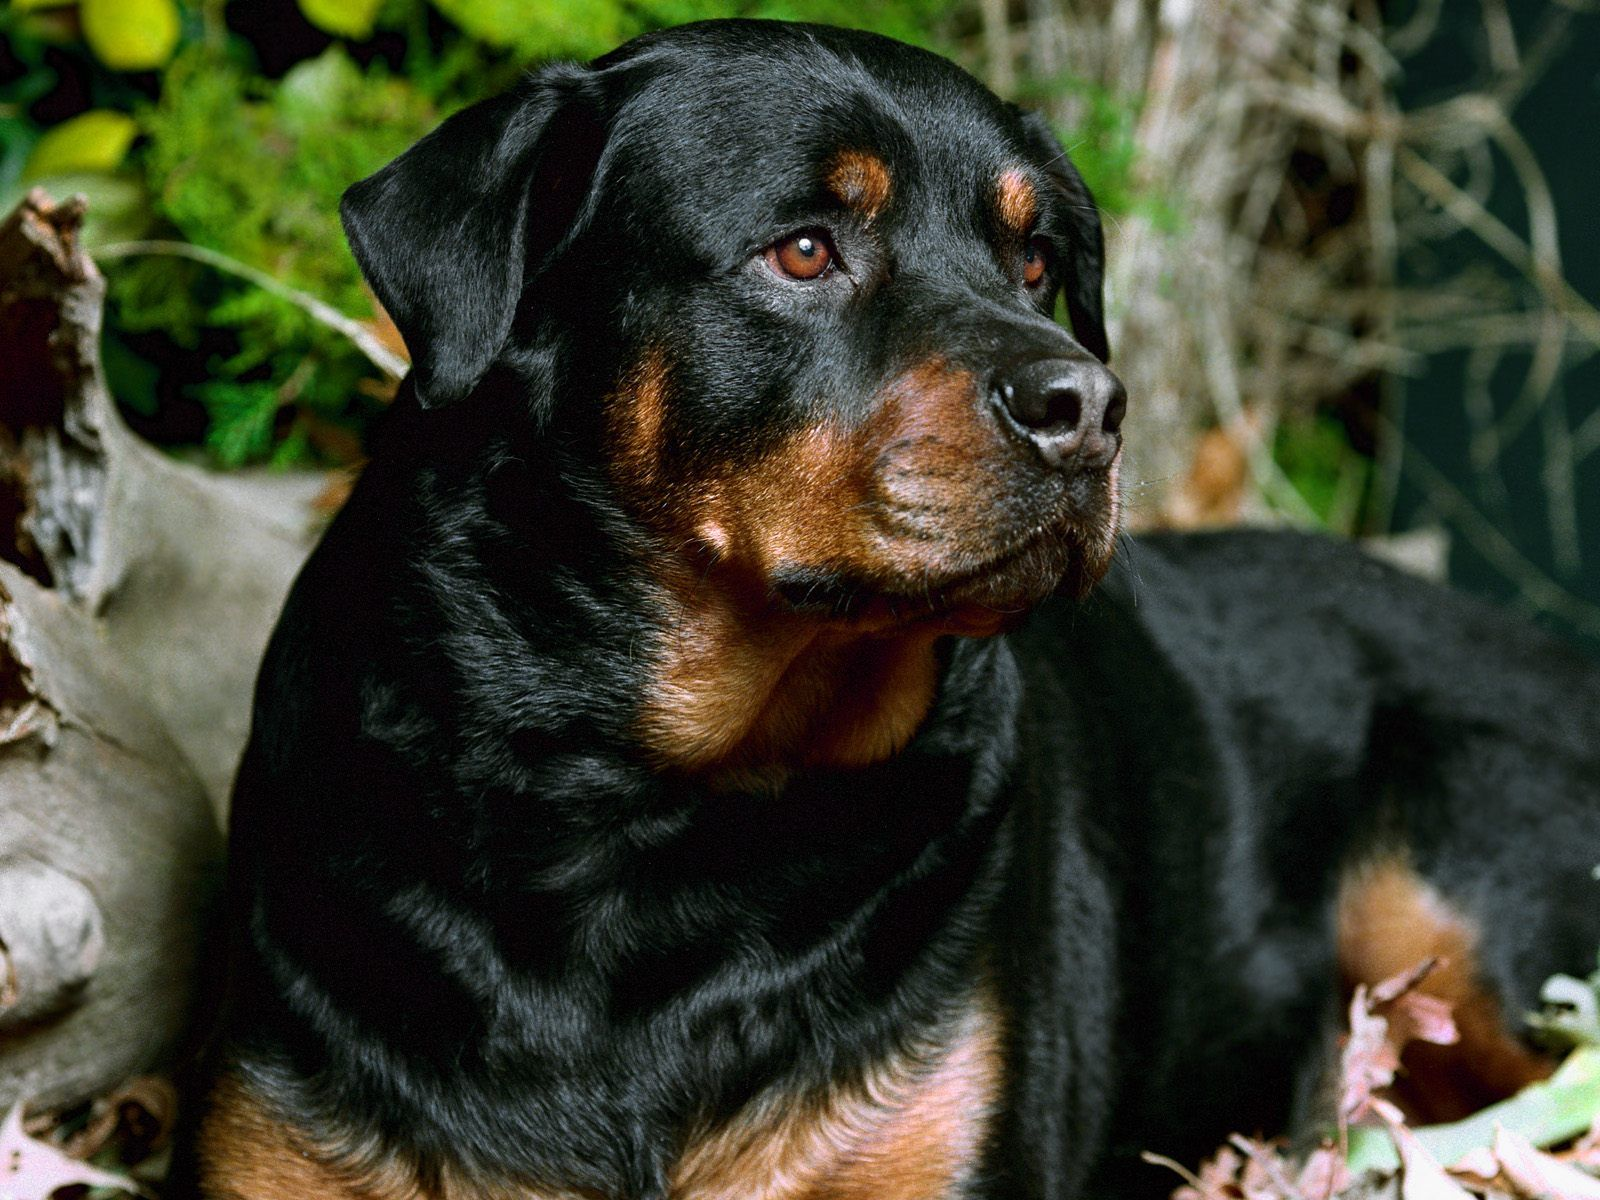 Free Big Dog Wallpapers And Big Dog Backgrounds Rottweiler Dog Rottweiler Dog Breed Rottweiler Breed